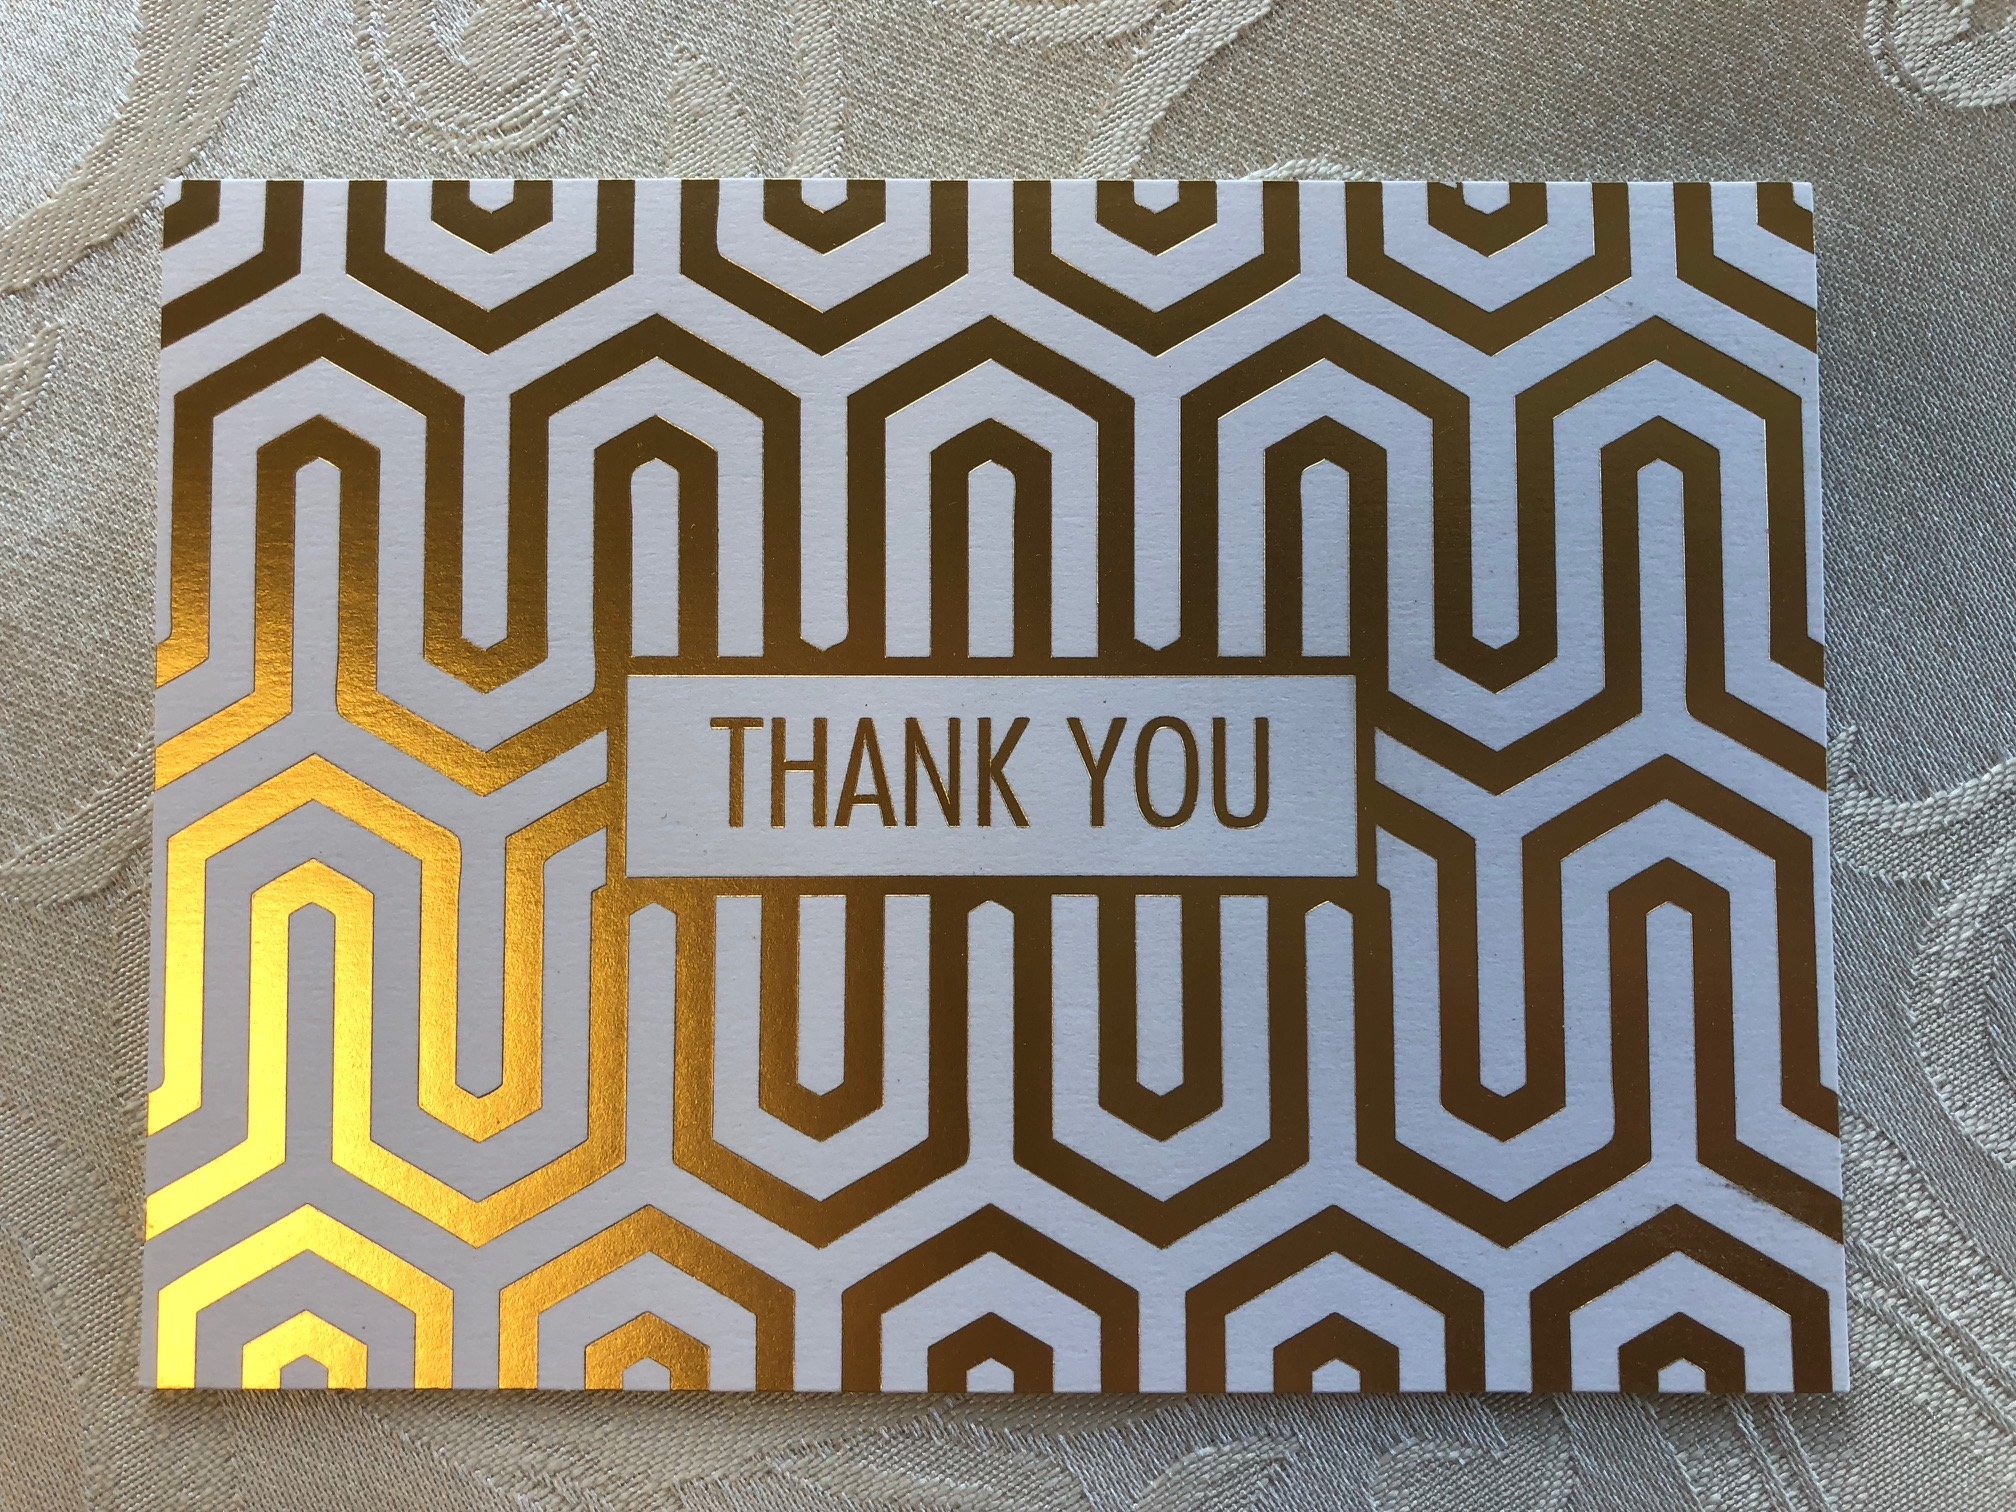 Thank_You_Cards-131.jpg